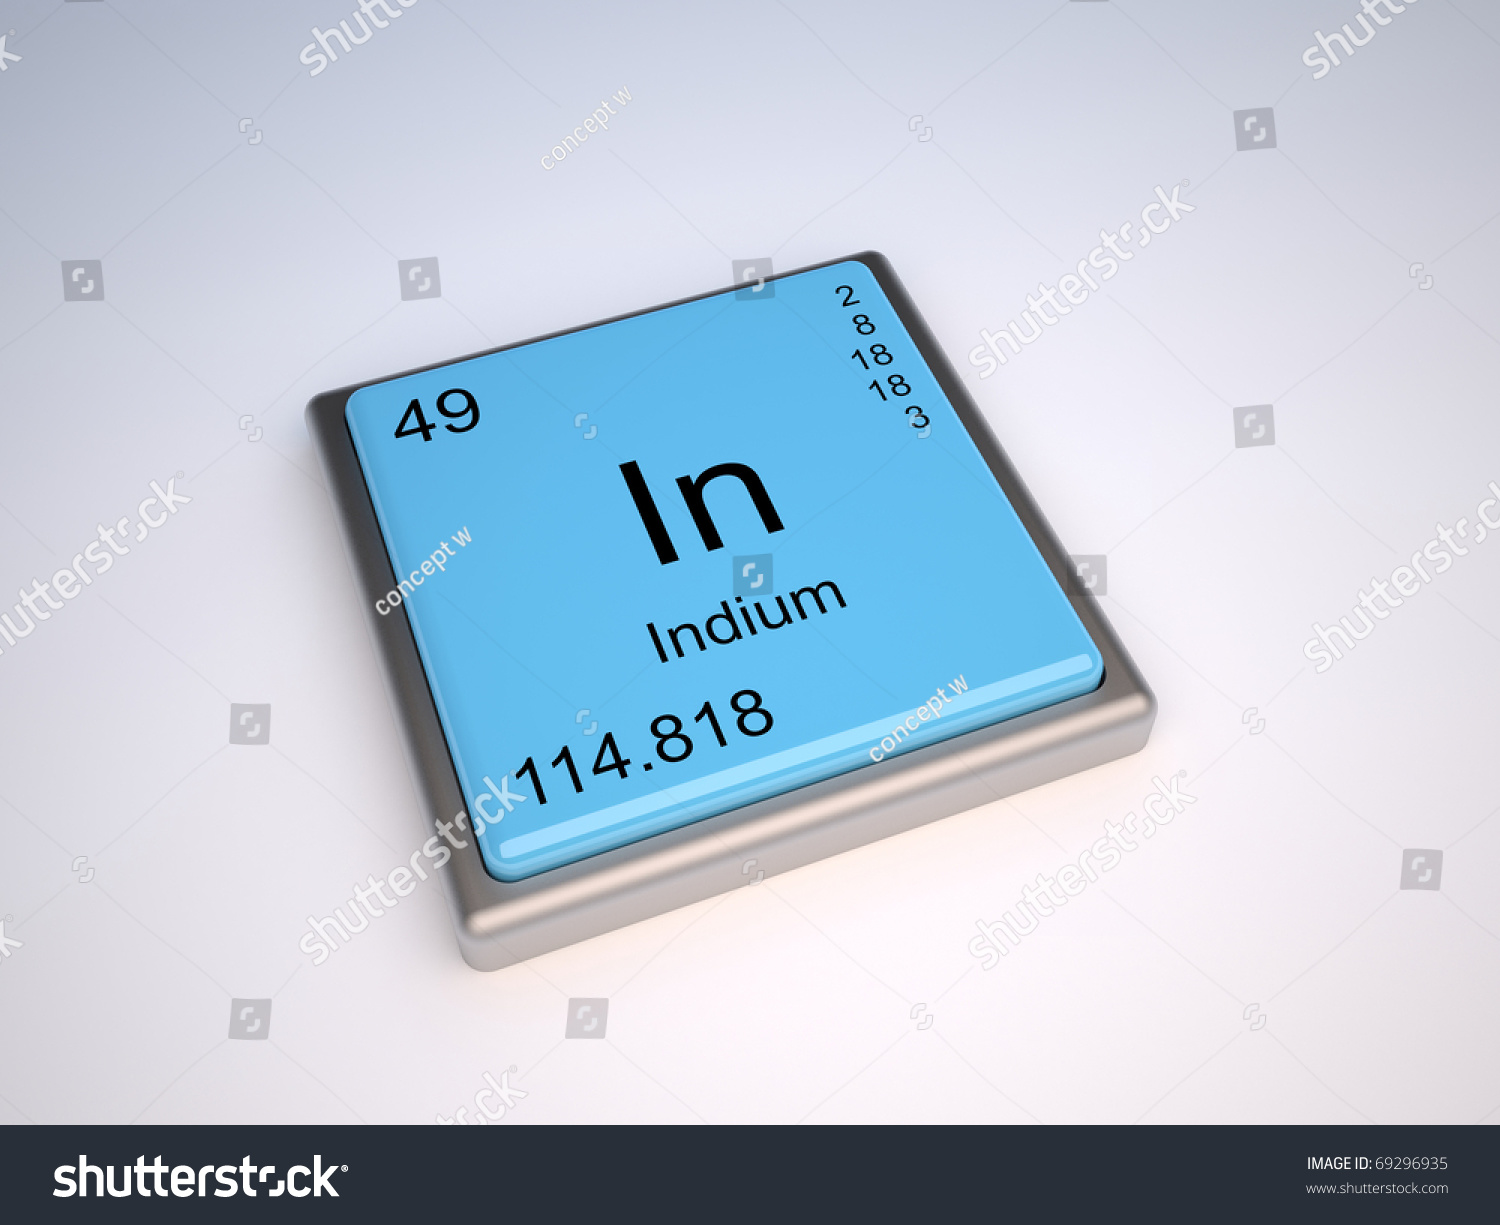 Indium chemical element periodic table symbol stock illustration indium chemical element of the periodic table with symbol in biocorpaavc Images